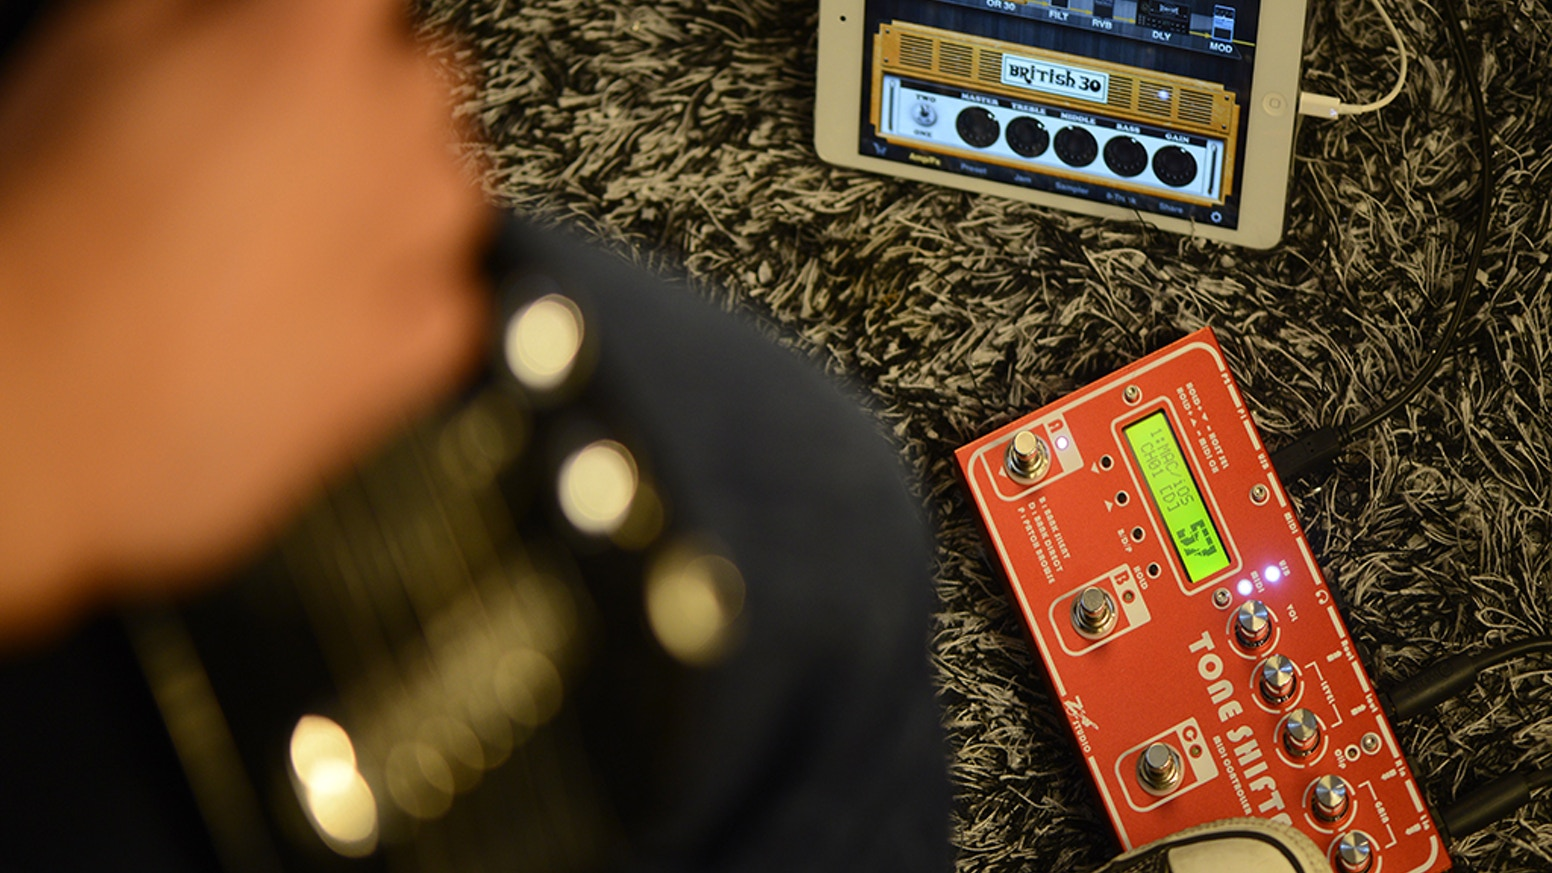 Tone Shifter 3 Smart Sound Interface is the world's first sound interface that combines MIDI controller for guitarists